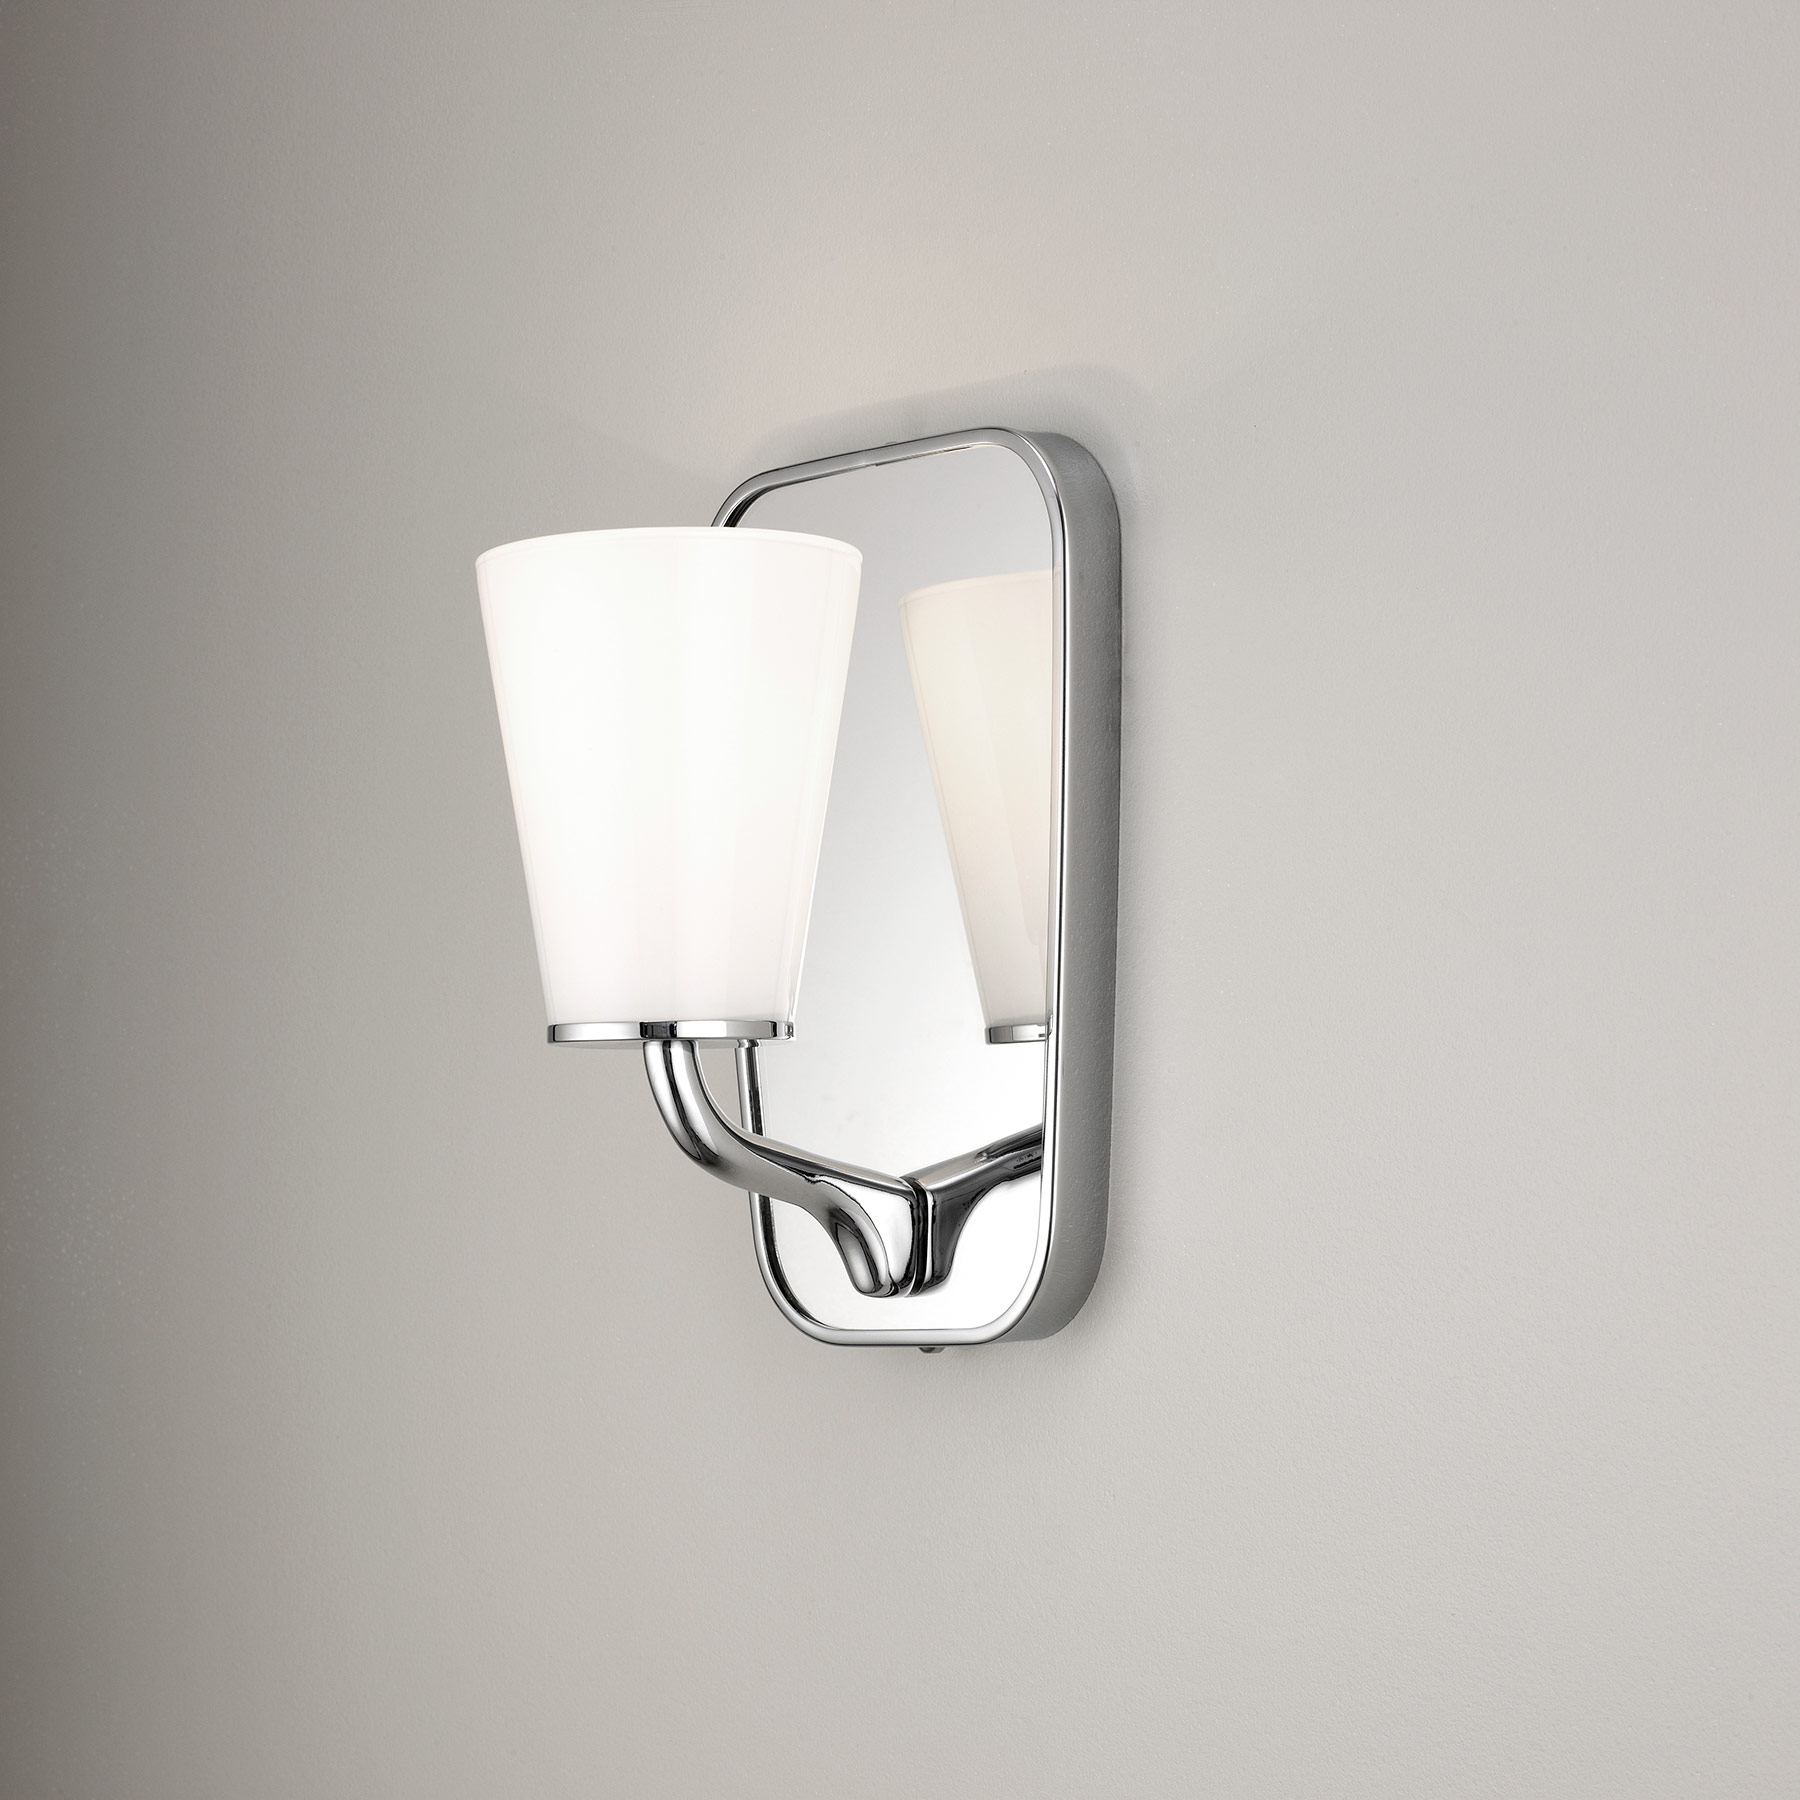 Transitional Twinkle Wall Mount Lamp